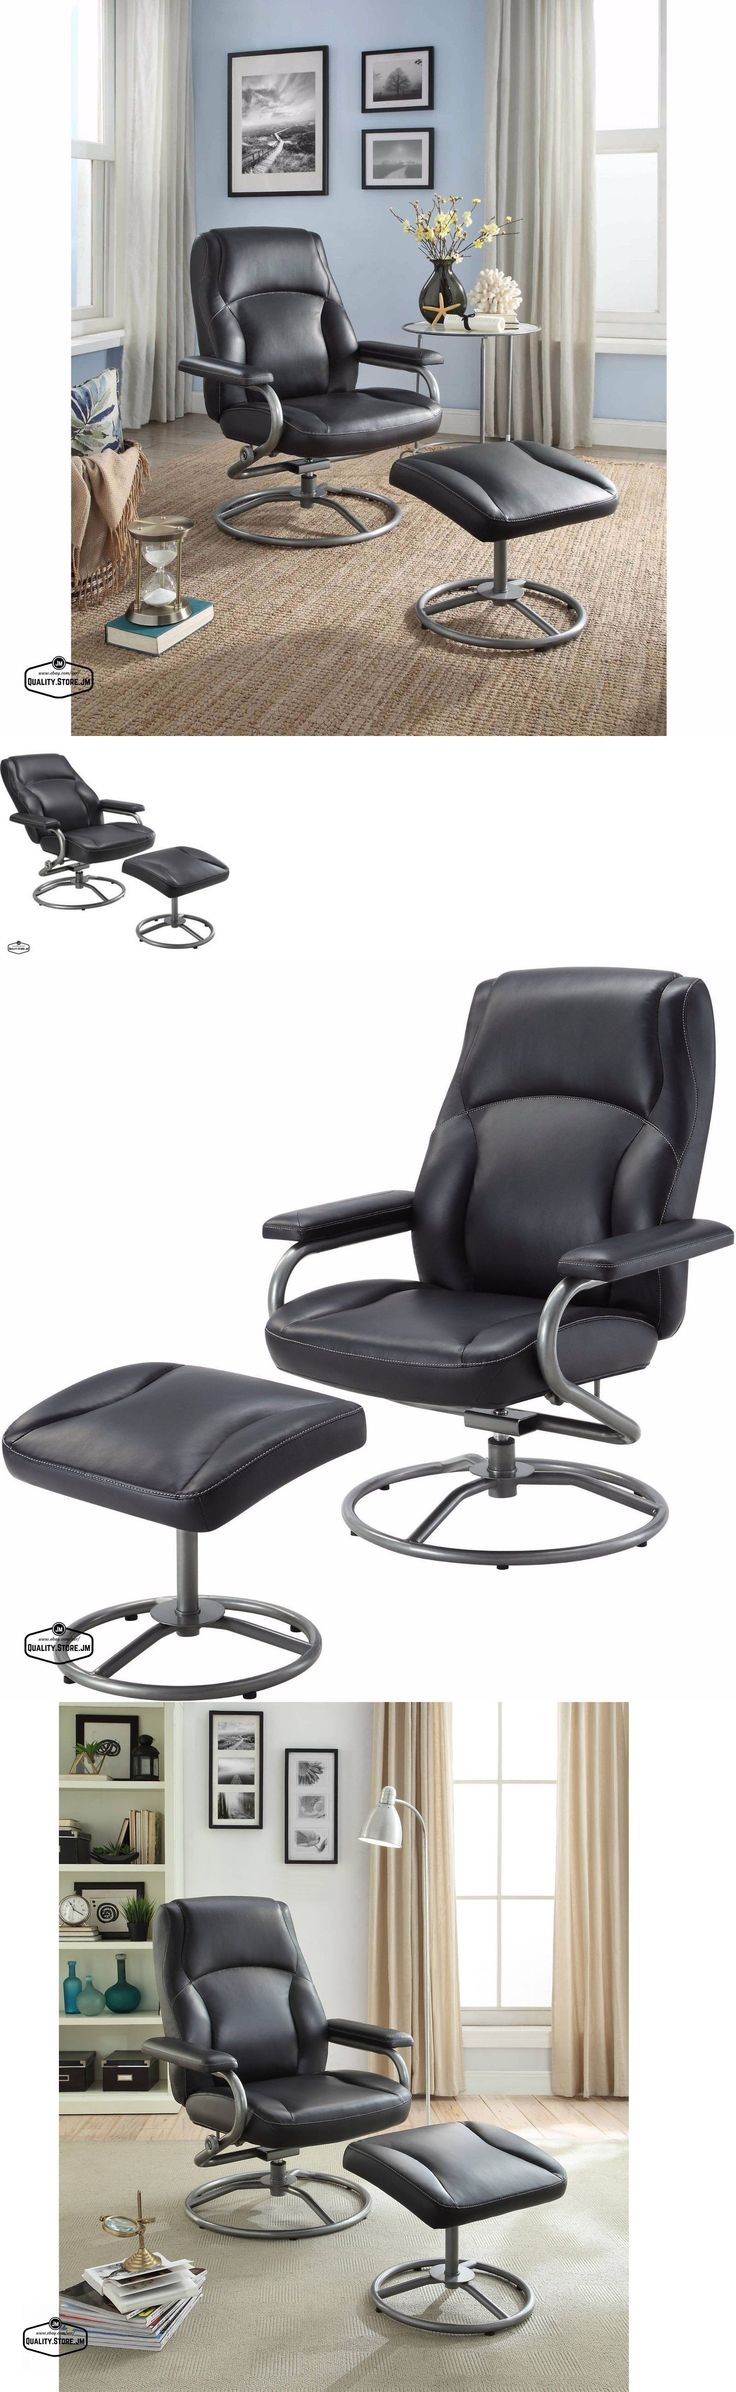 furniture: Recliner Chair With Ottoman Glider Swivel Black Home Office Furniture Seat New -> BUY IT NOW ONLY: $143.9 on eBay!